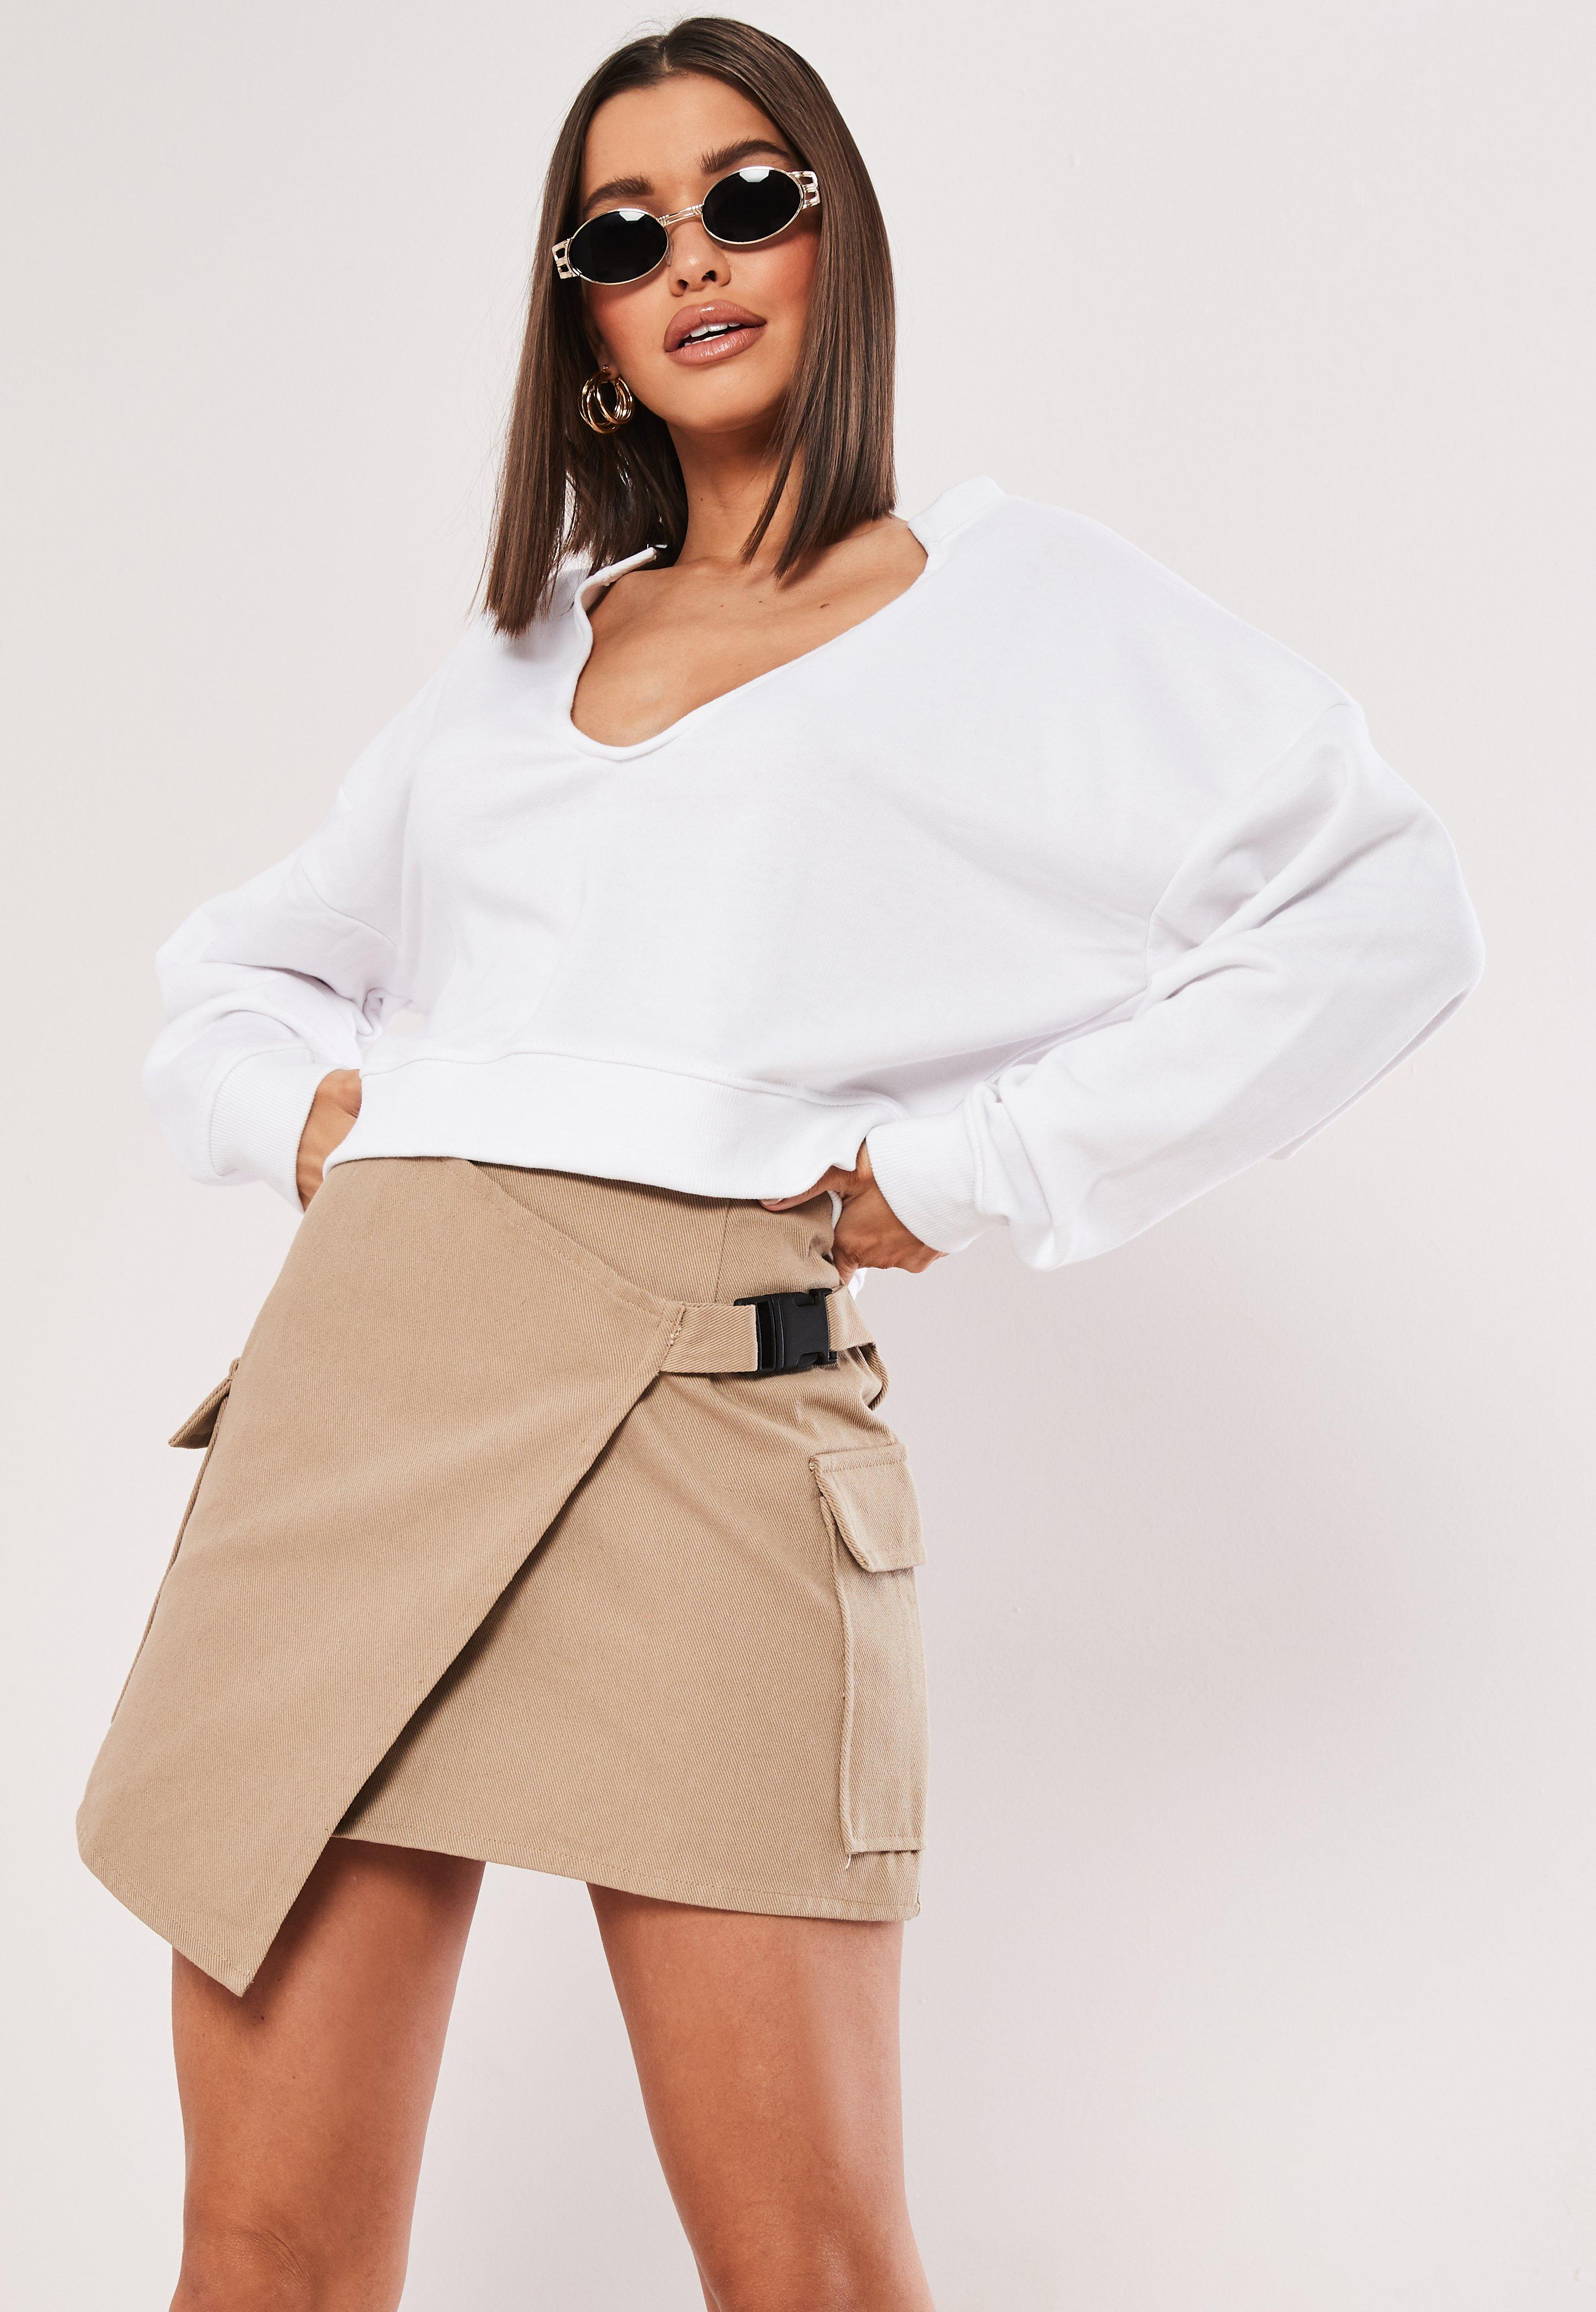 397ff72bcaa5c Sale - Cheap Clothes for Women Online - Missguided Australia